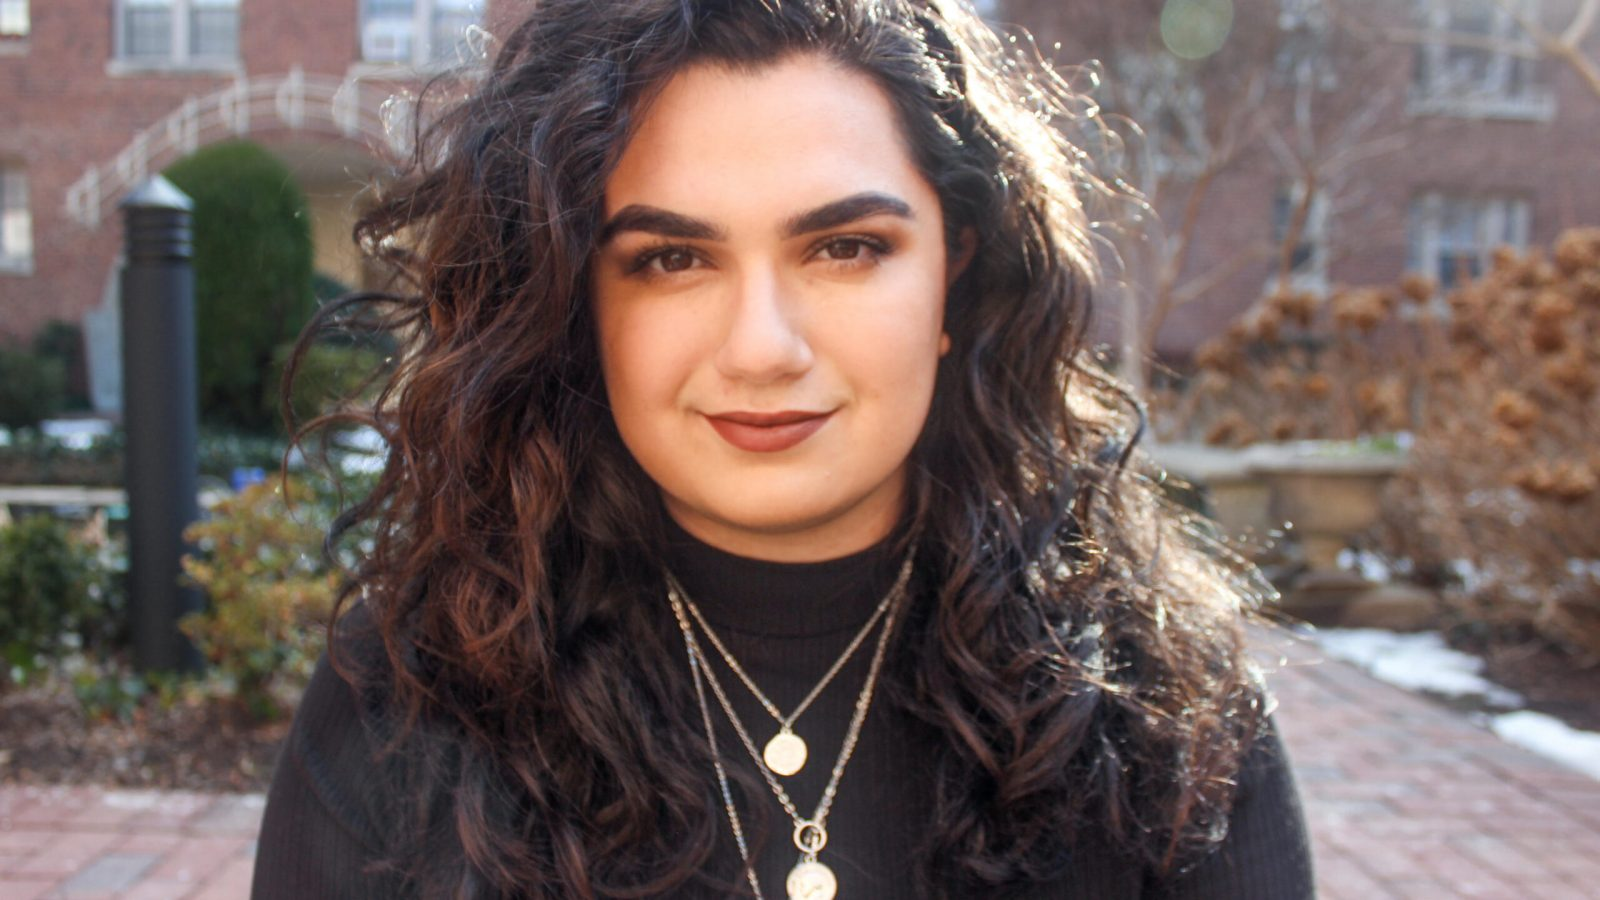 Headshot of Alanna Kronk with brick patio and buildings in the background